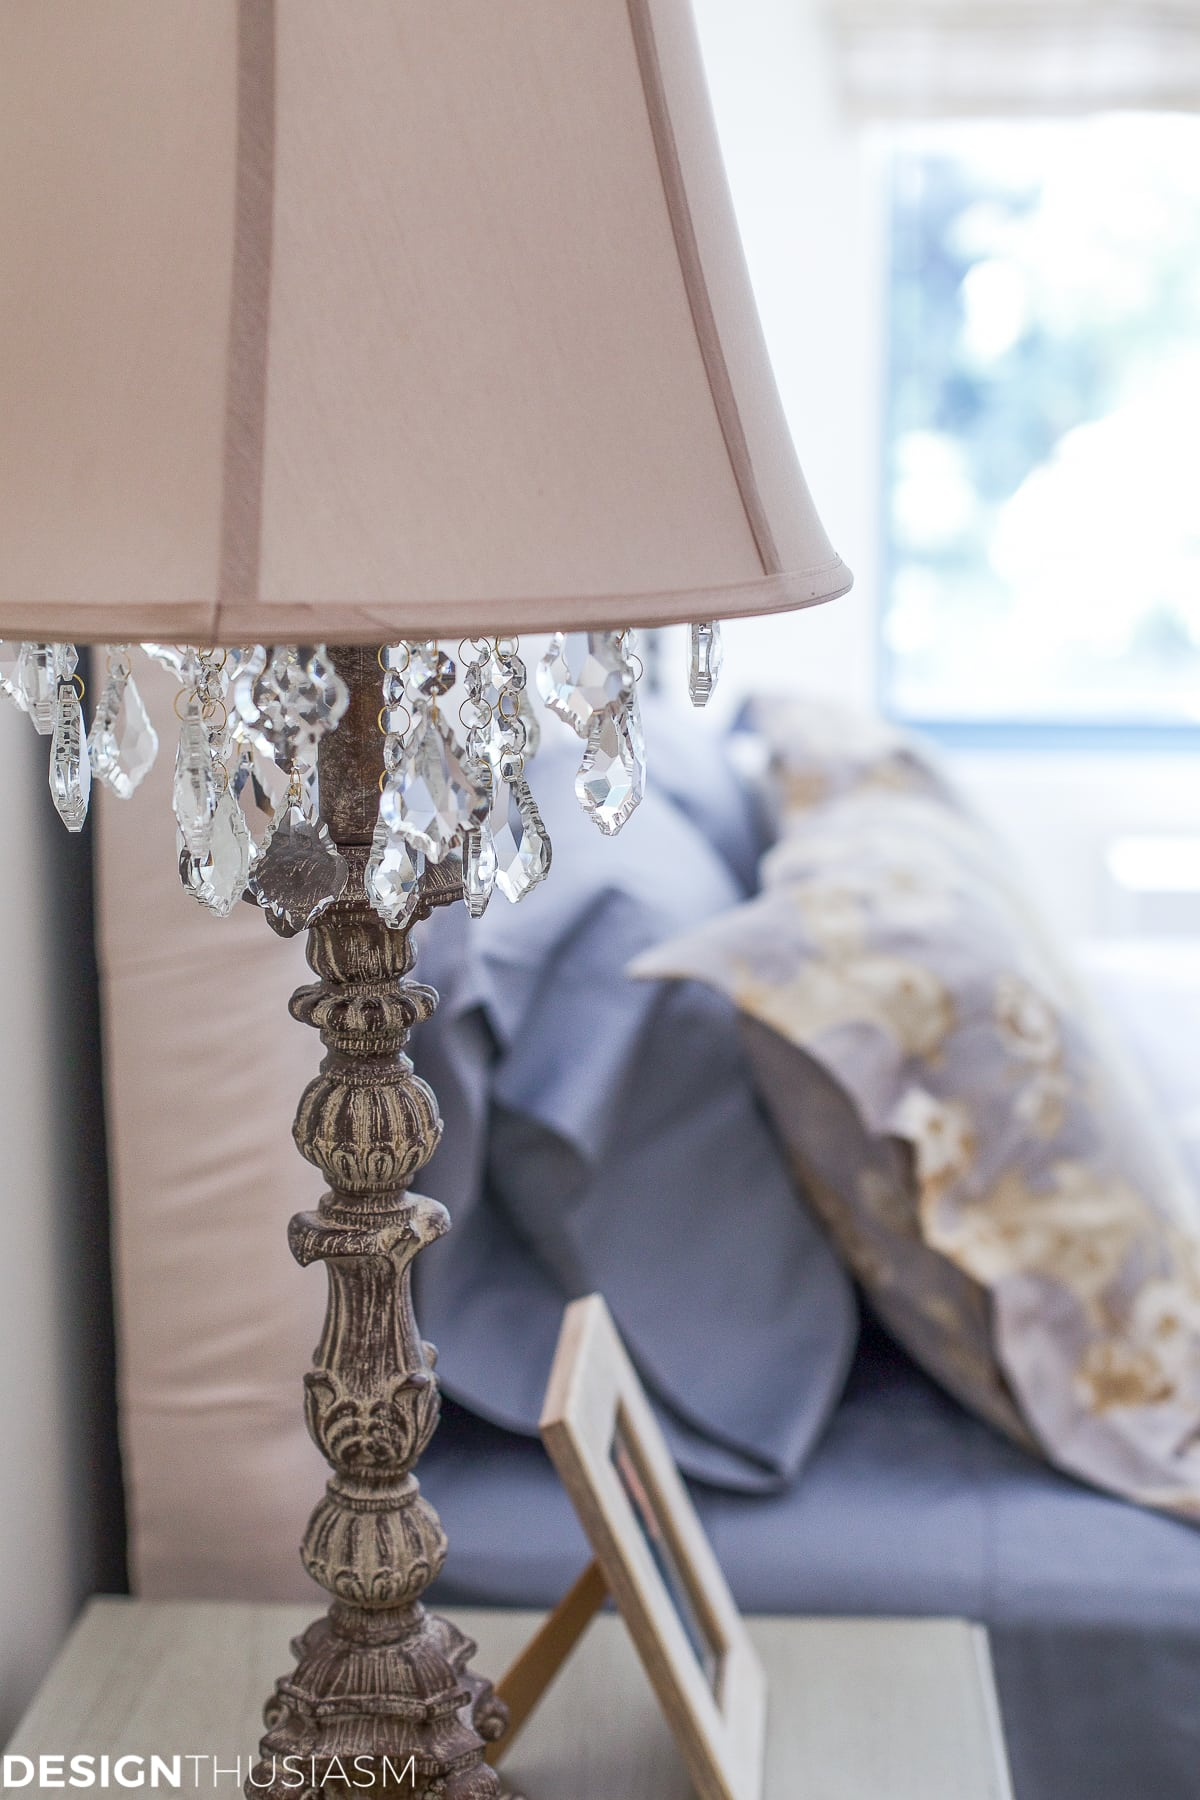 Downsizing Tips - How to keep the bedroom light and bright - designthusiasm.com